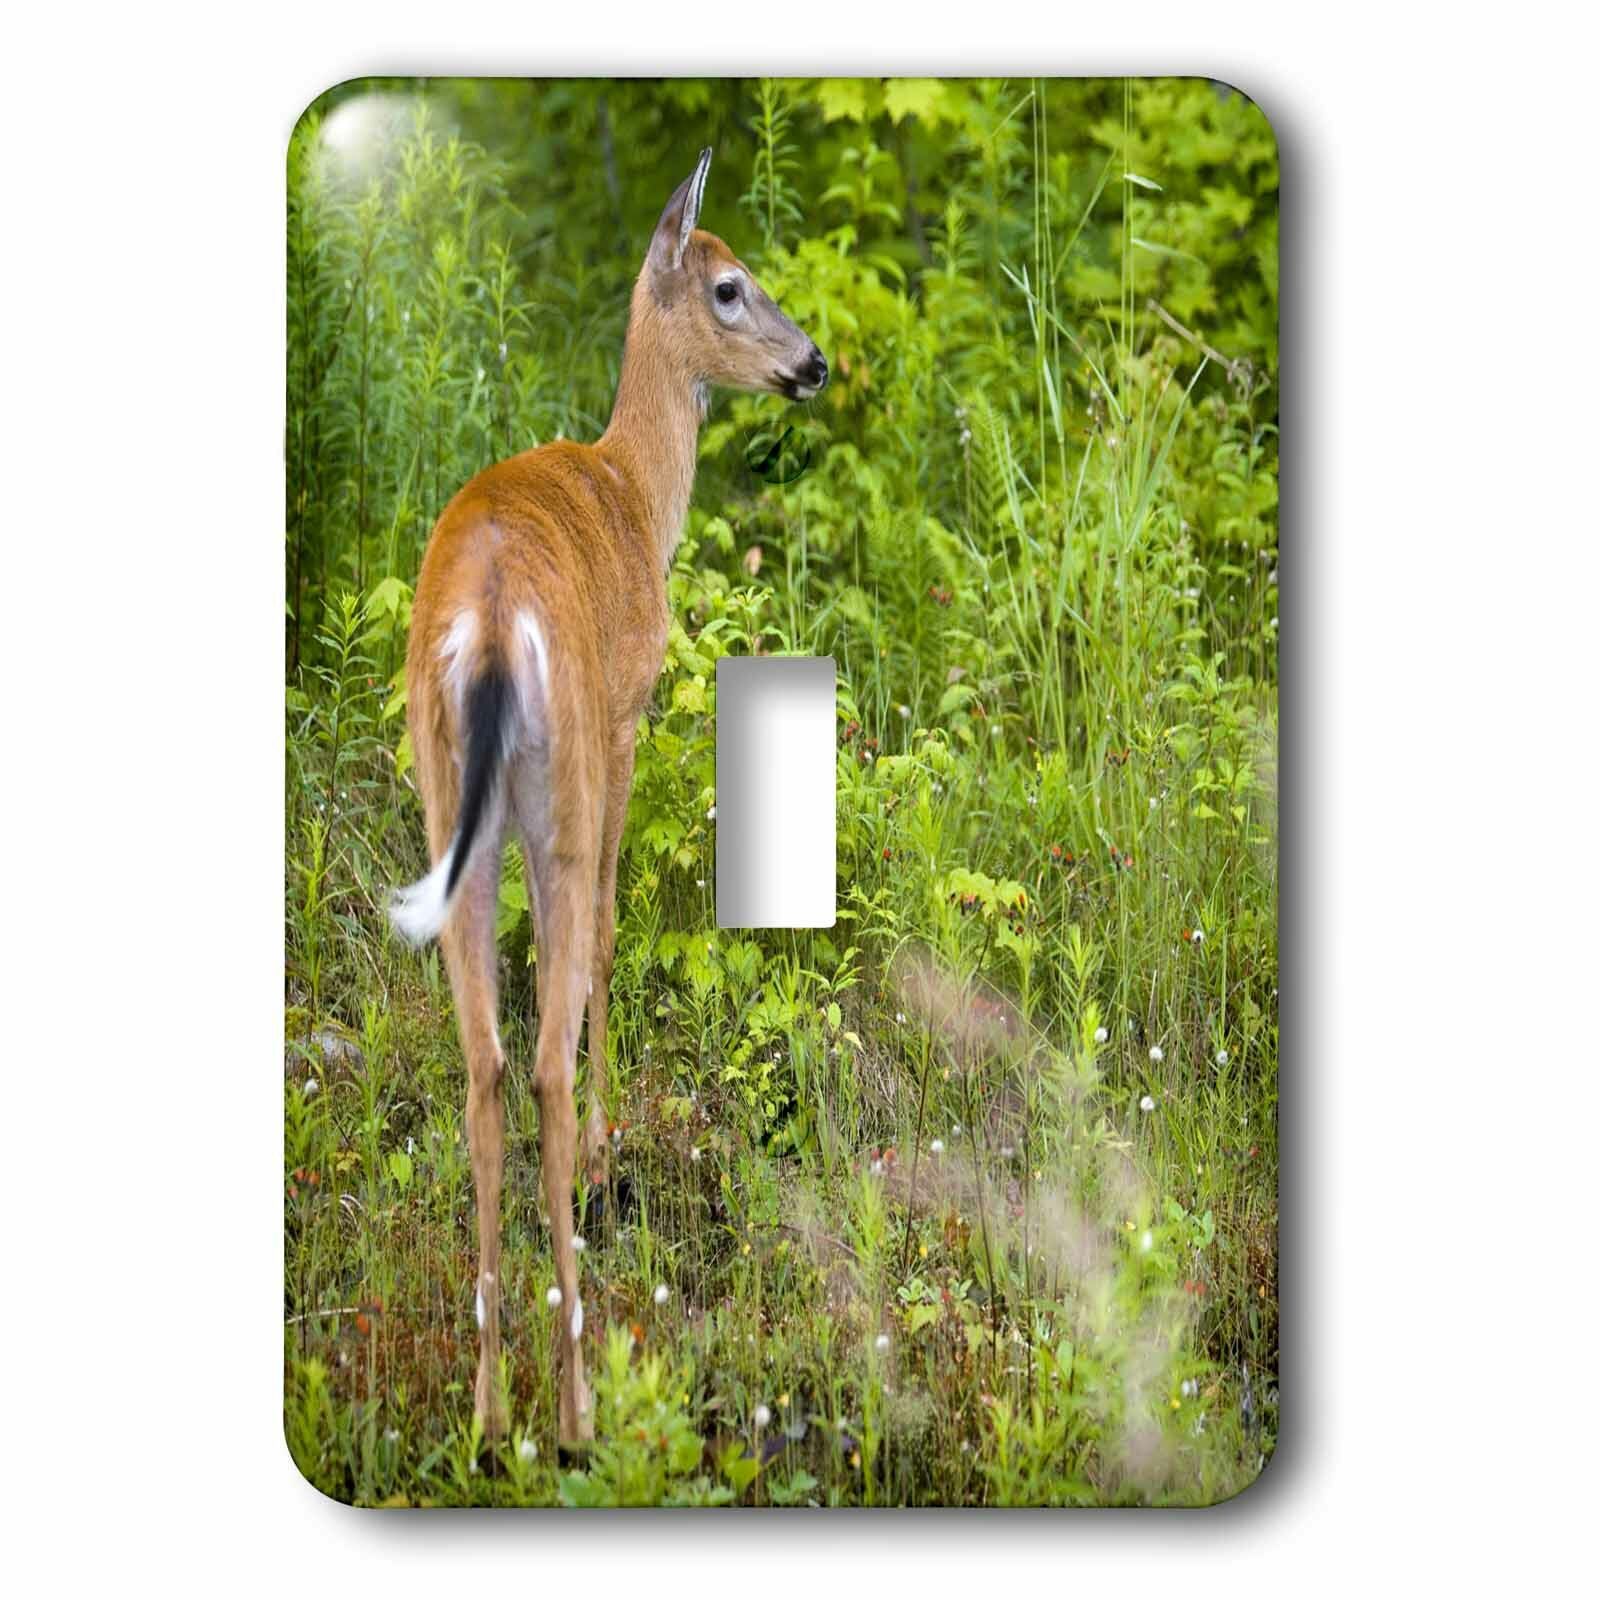 3drose Whitetail Deer Pittsburg New Hampshire 1 Gang Toggle Light Switch Wall Plate Wayfair